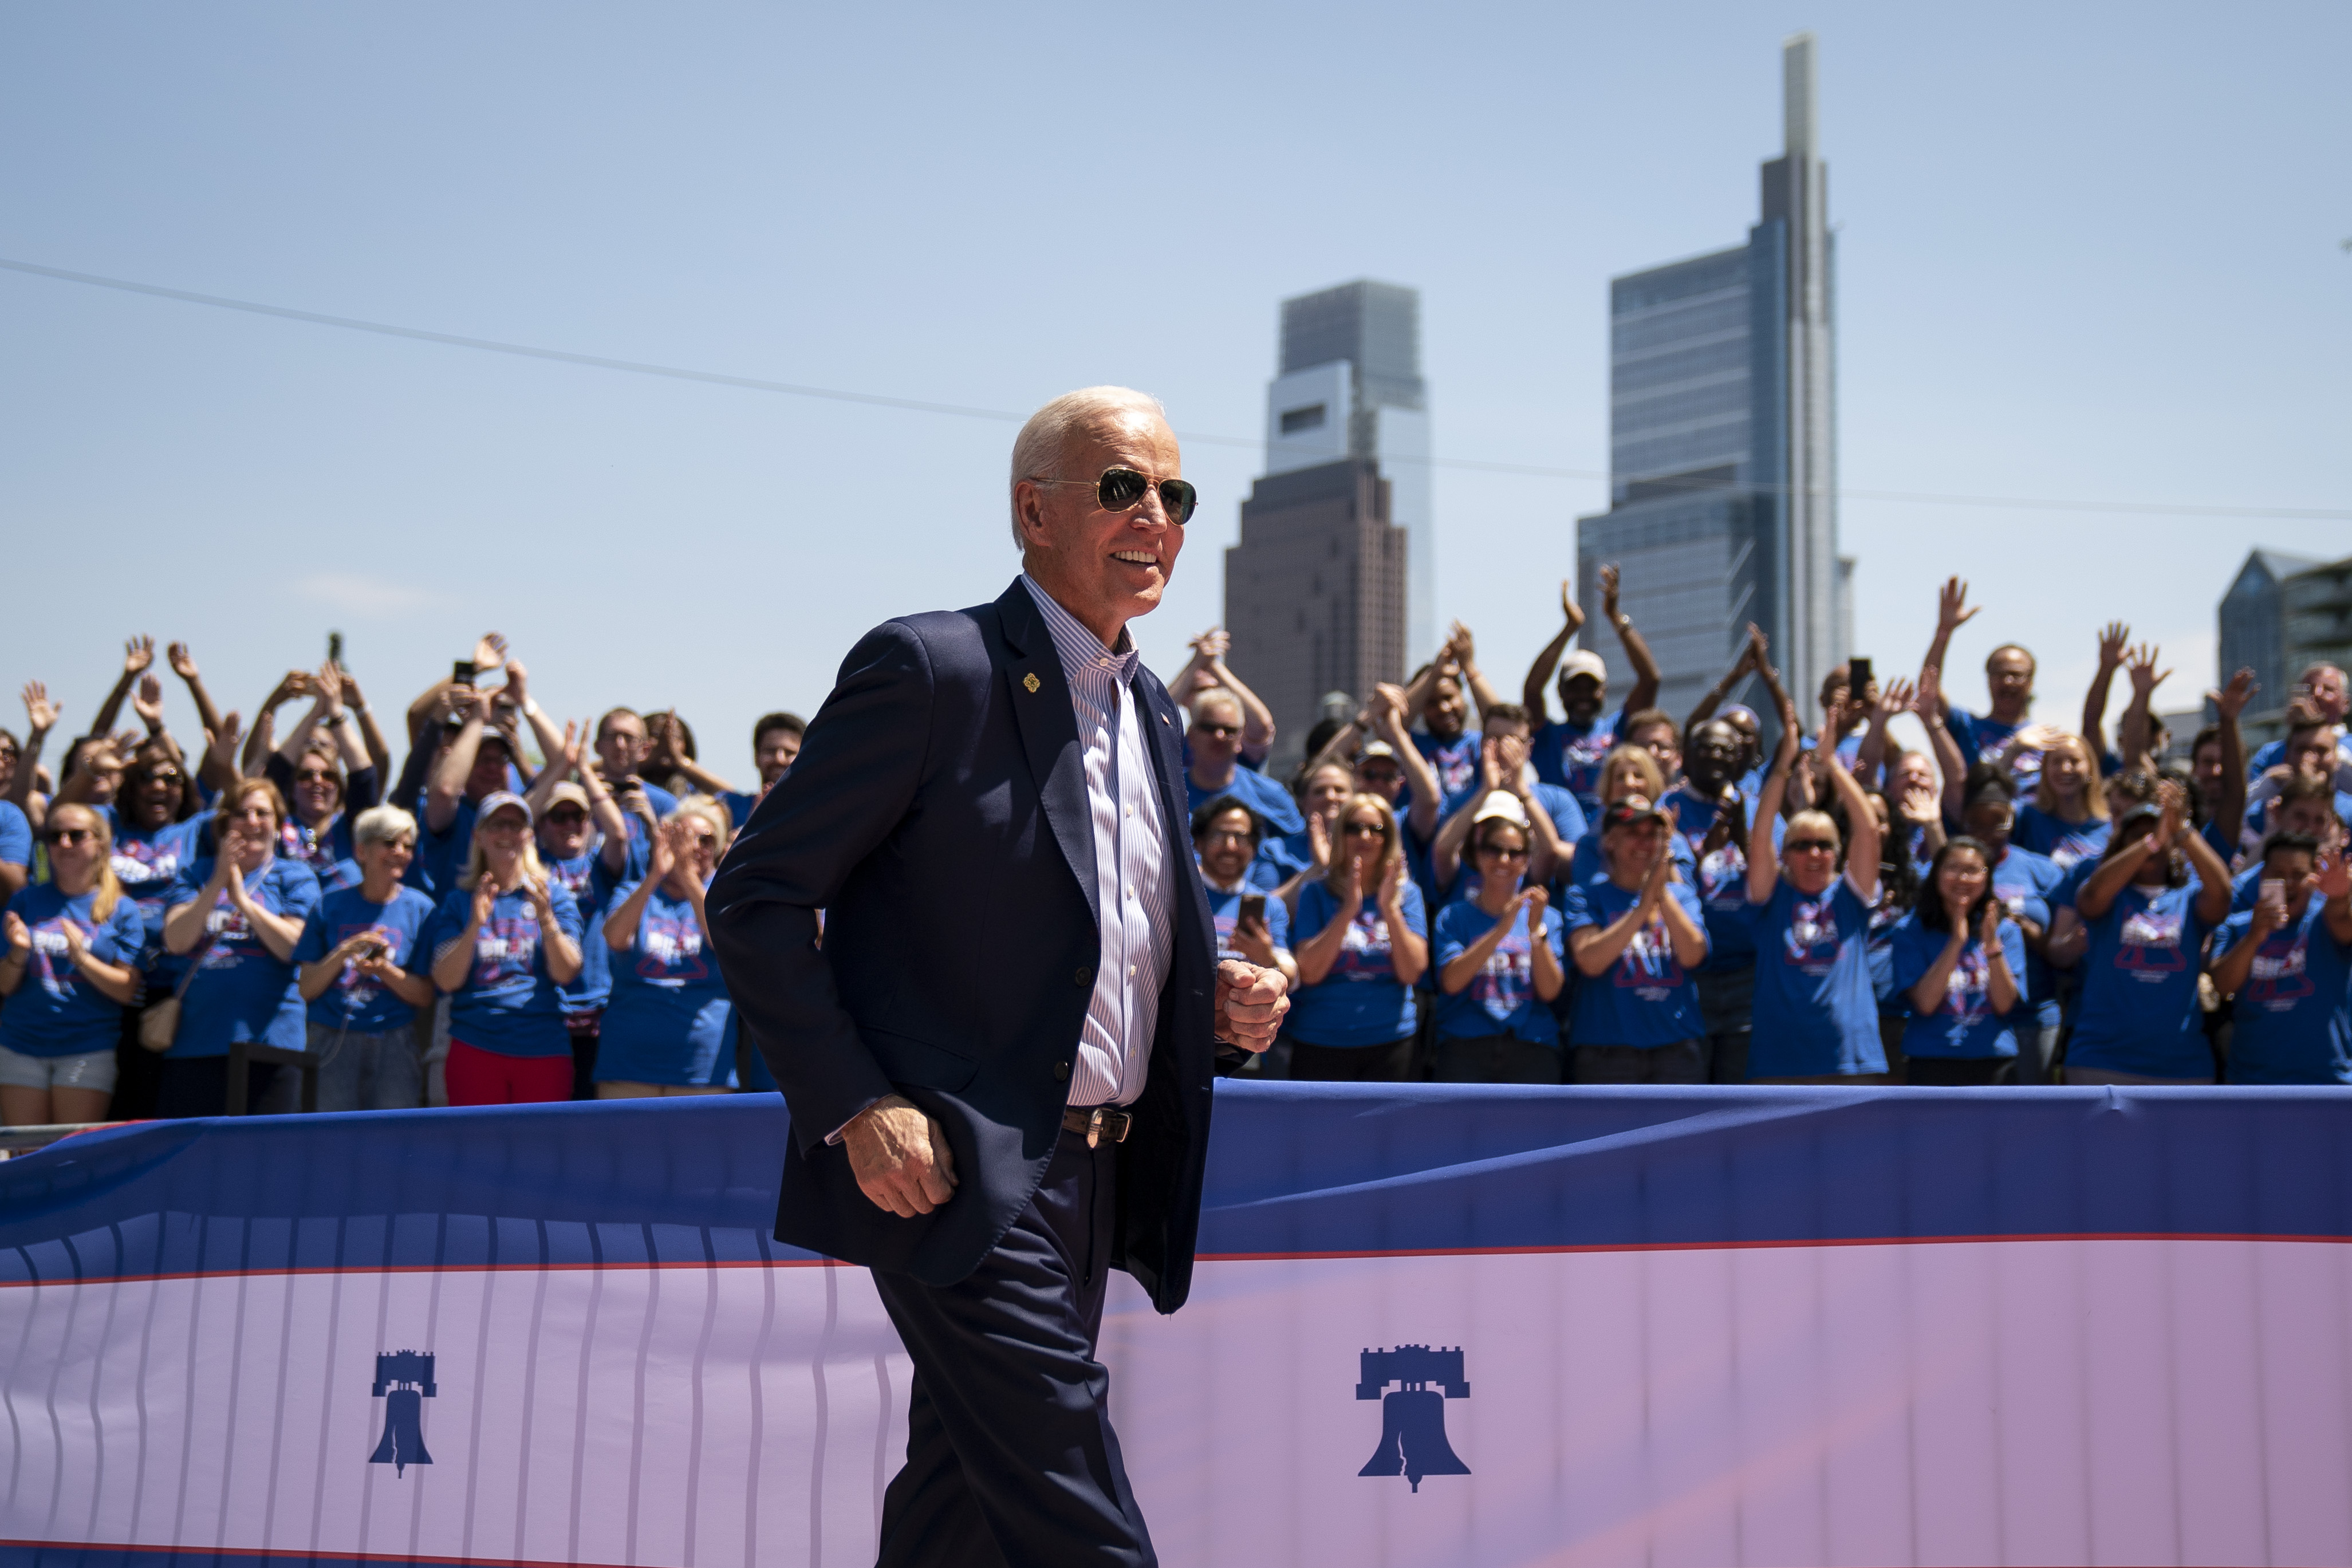 PHILADELPHIA, PA - MAY 18: Former U.S. Vice President and Democratic presidential candidate Joe Biden arrives for a campaign kickoff rally, May 18, 2019 in Philadelphia, Pennsylvania. Since Biden announced his candidacy in late April, he has taken the top spot in all polls of the sprawling Democratic primary field. Biden's rally on Saturday was his first large-scale campaign rally after doing smaller events in Iowa and New Hampshire in the past few weeks. (Photo by Drew Angerer/Getty Images)